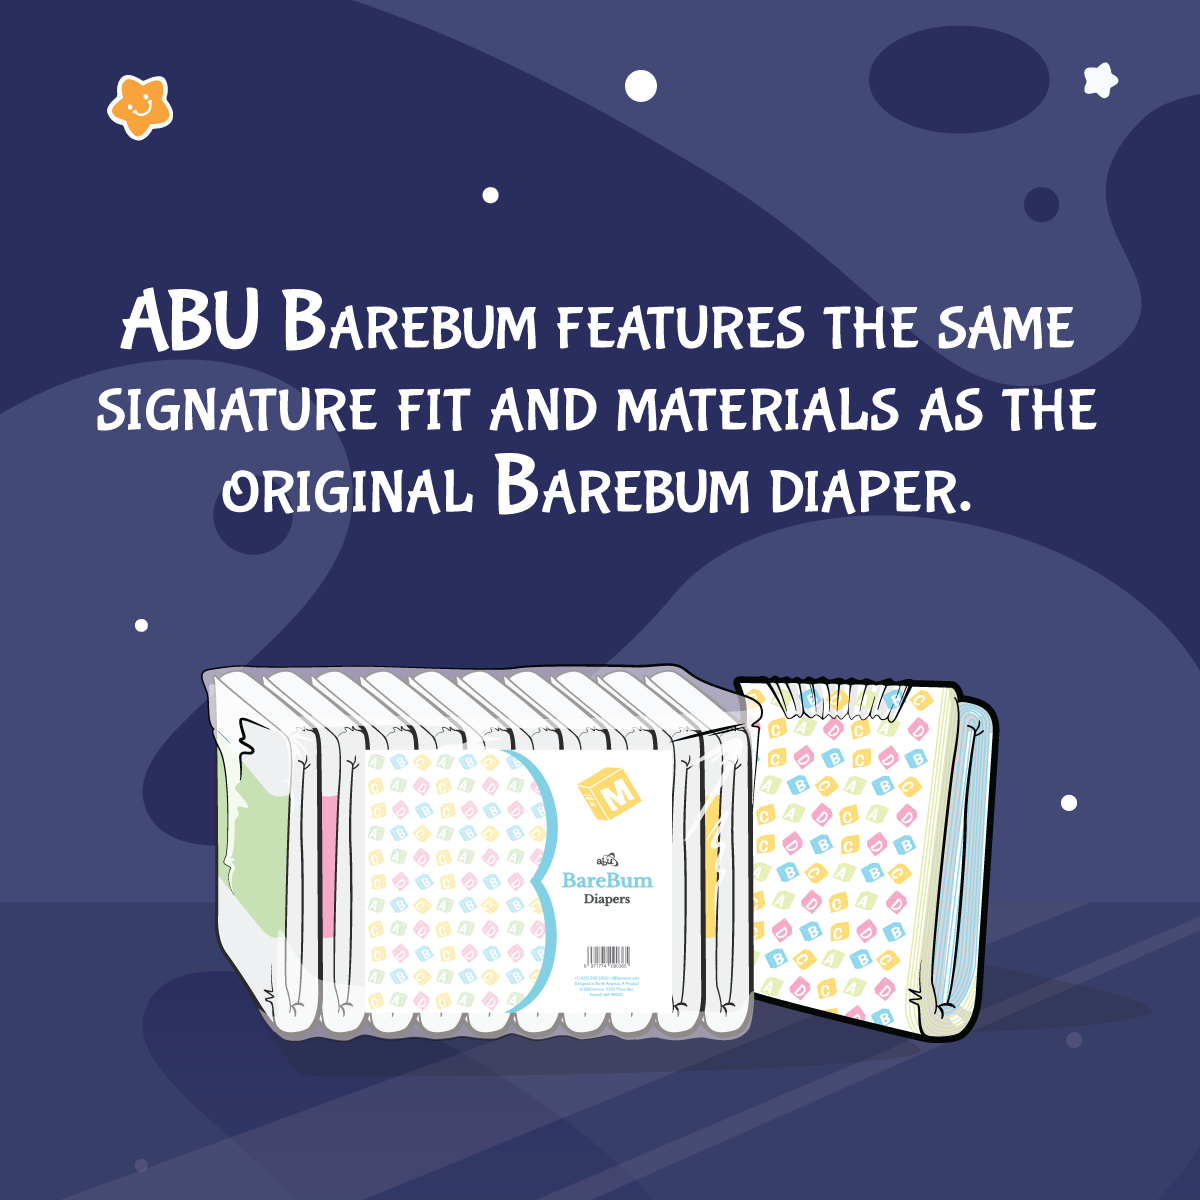 ABU BareBum Diapers